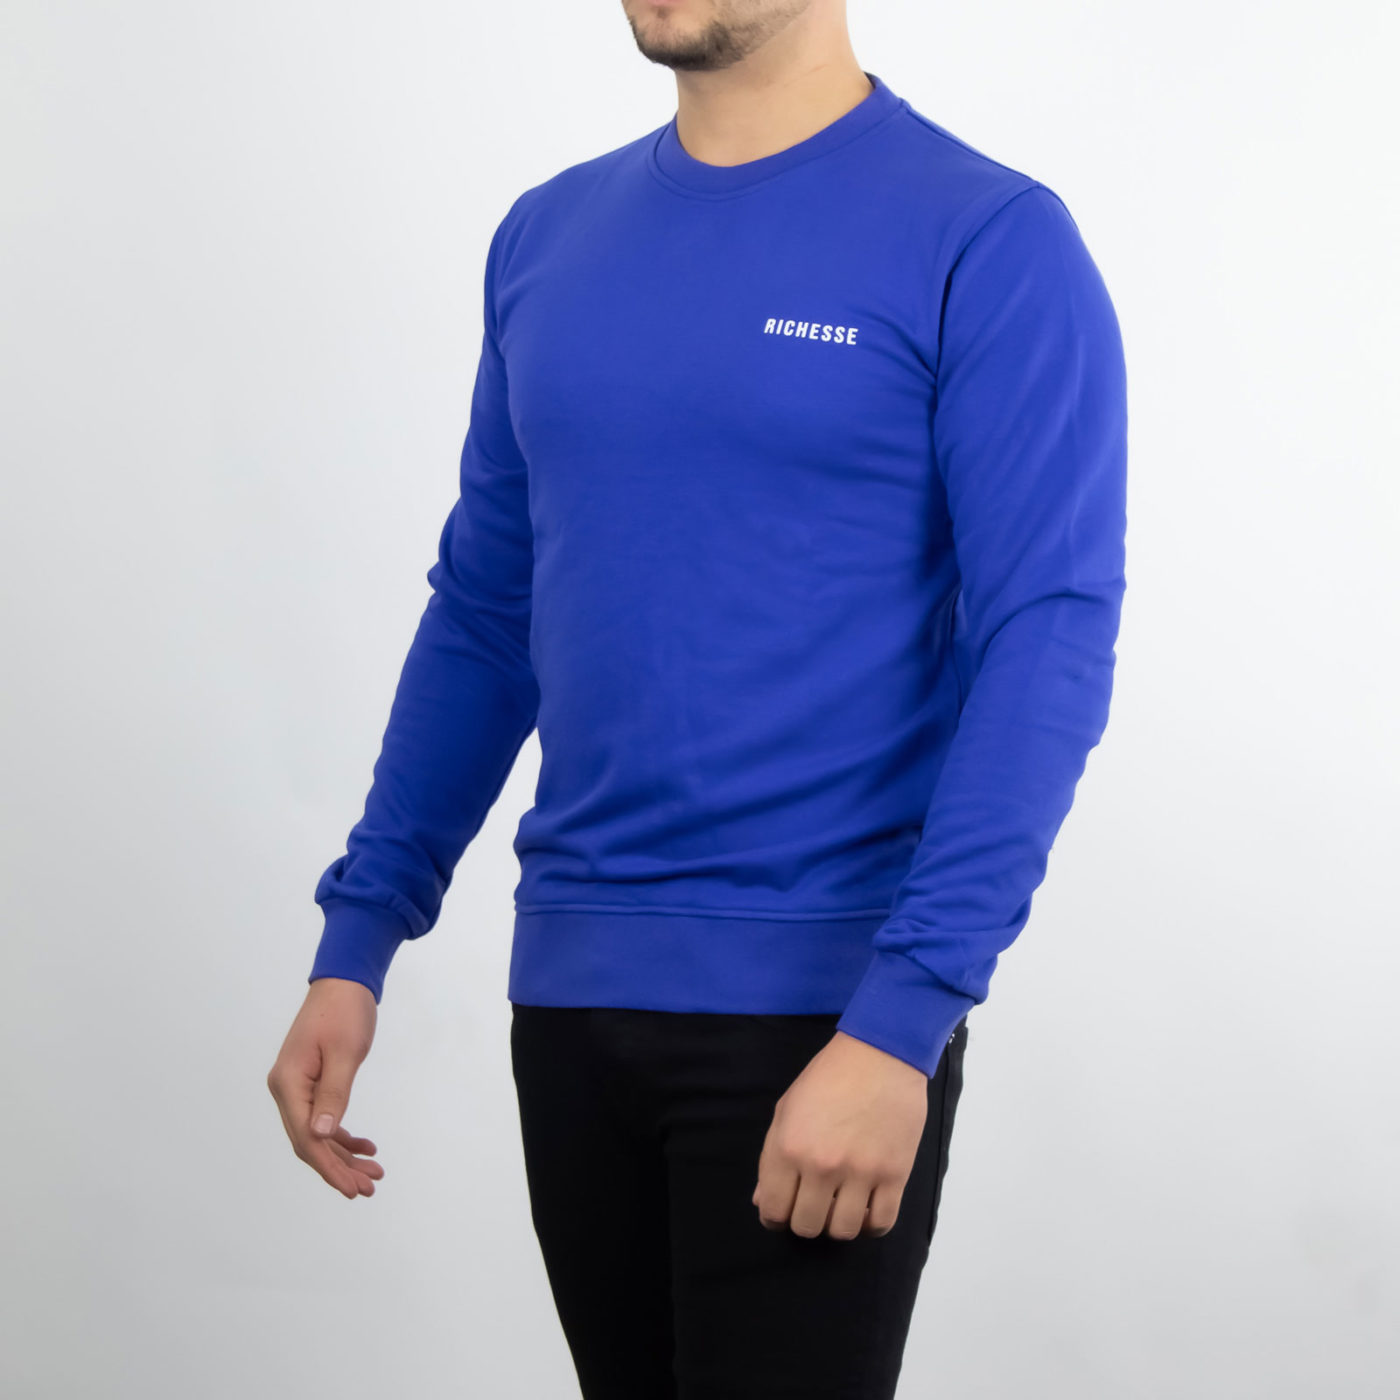 Richesse-Crewneck-Blue-3